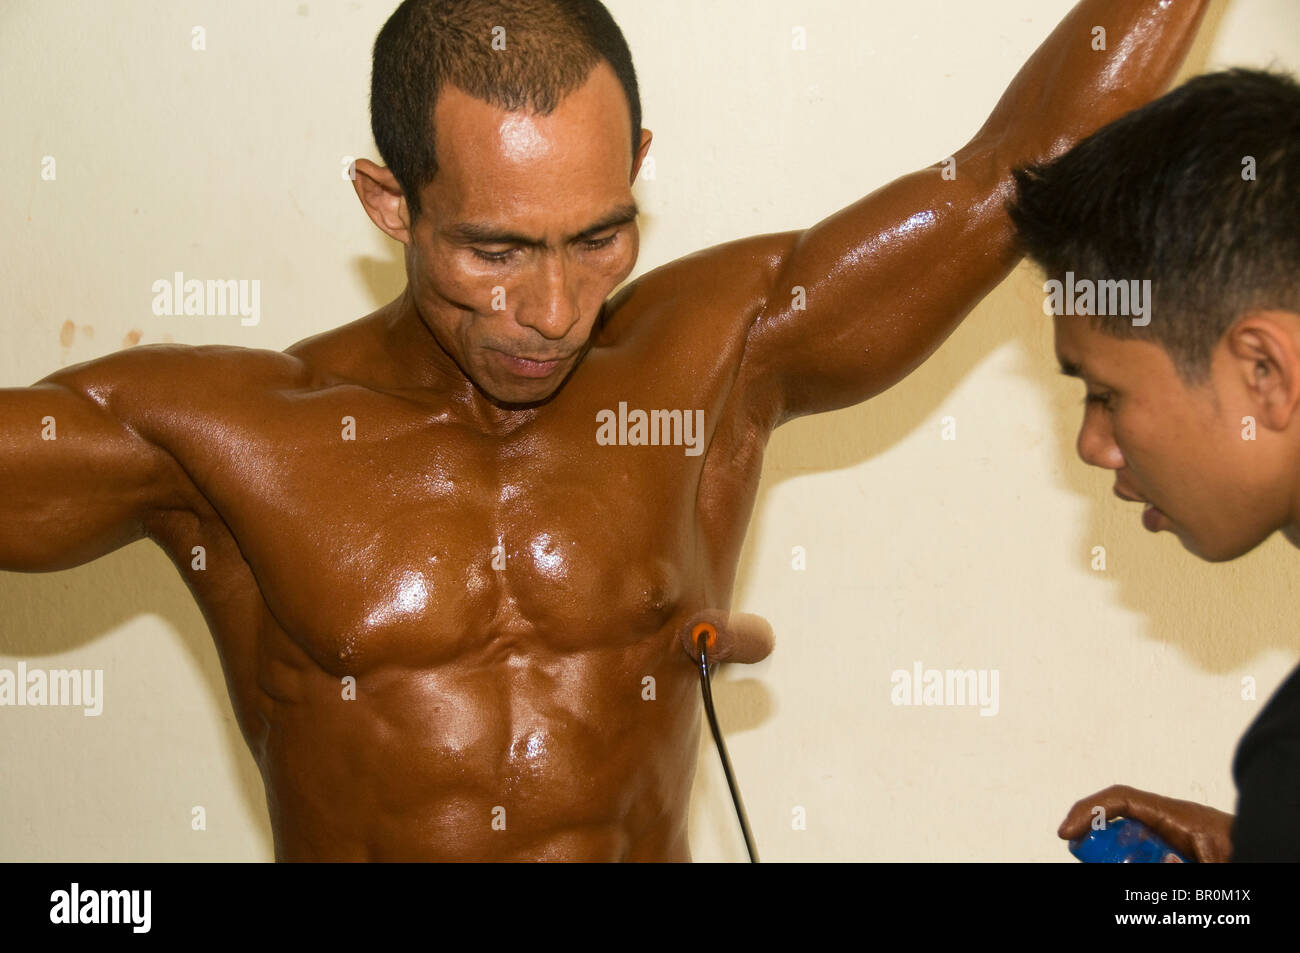 bodybuilder being painted tan before going onstage at a competition in Bangkok Thailand - Stock Image